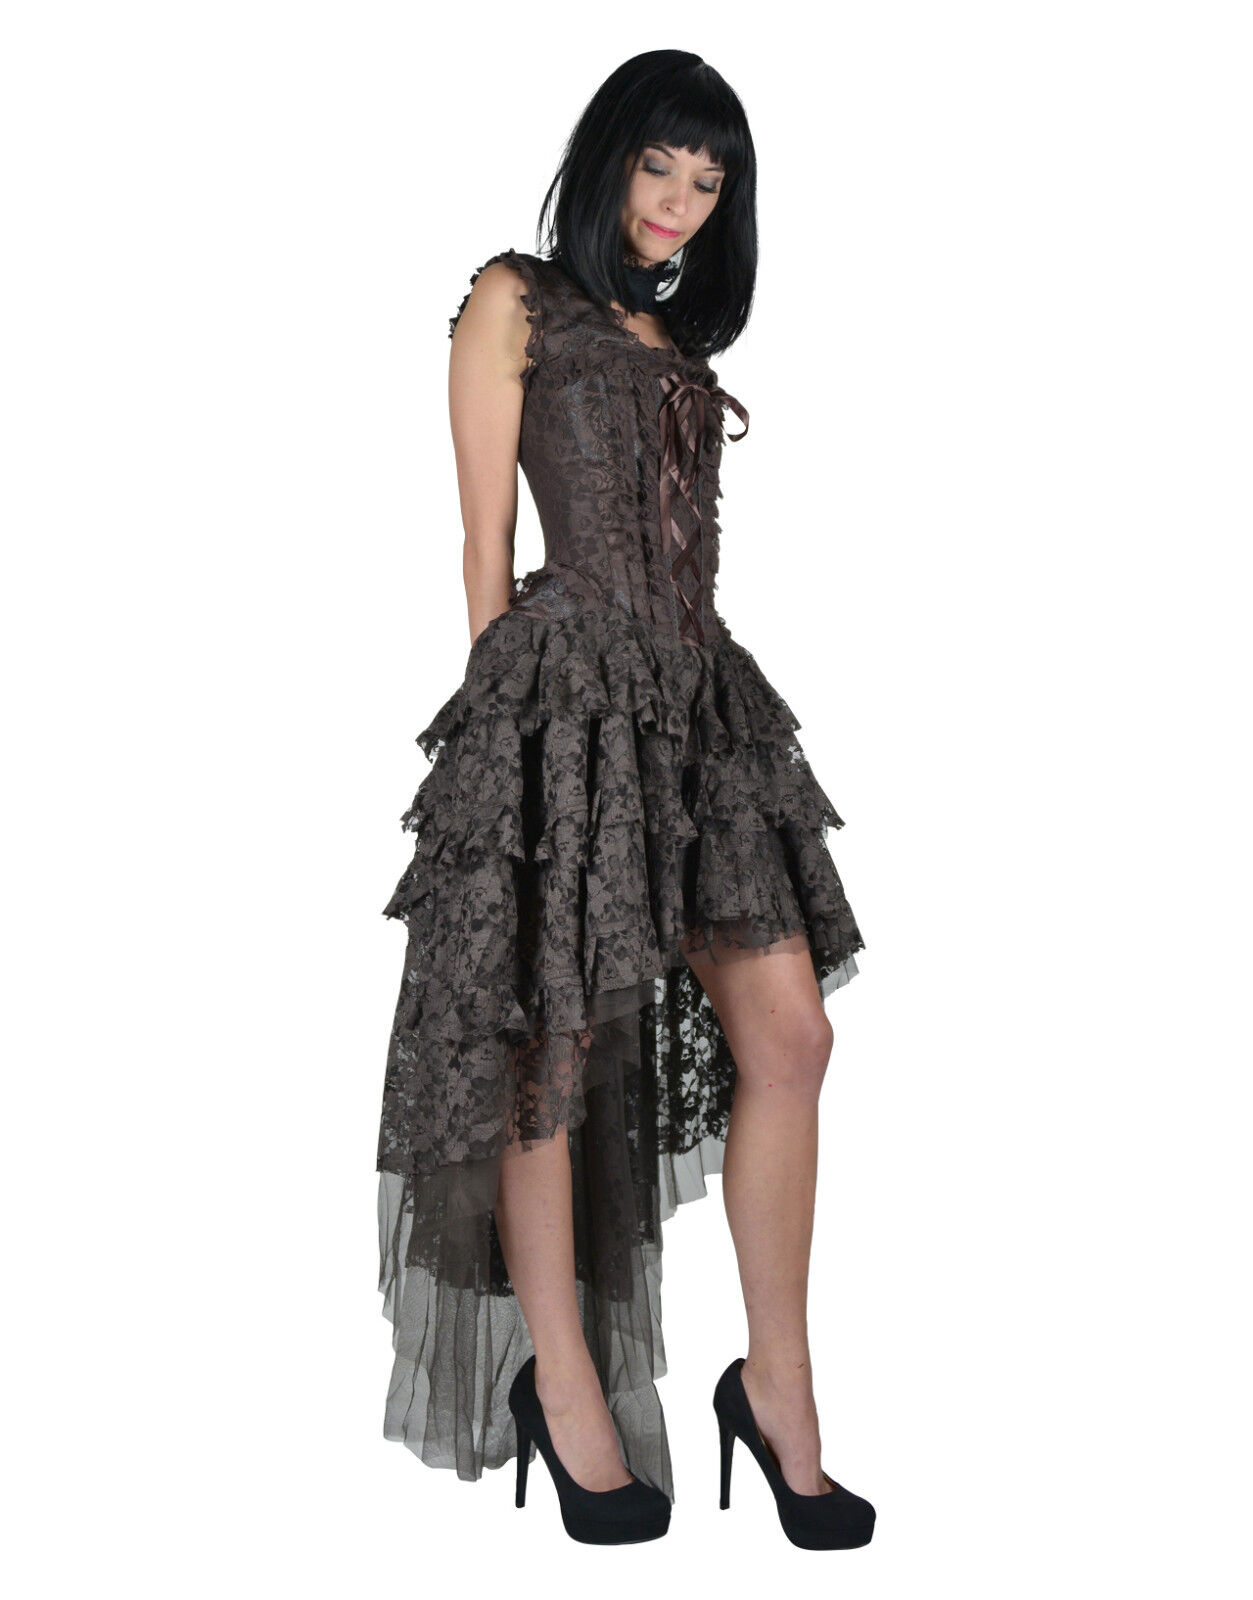 BURLESKA GOTHIC OPHELIE VAMPIRE WEDDING PROM PROM PROM VINTAGE BROWN BROCADE CORSET DRESS 829637